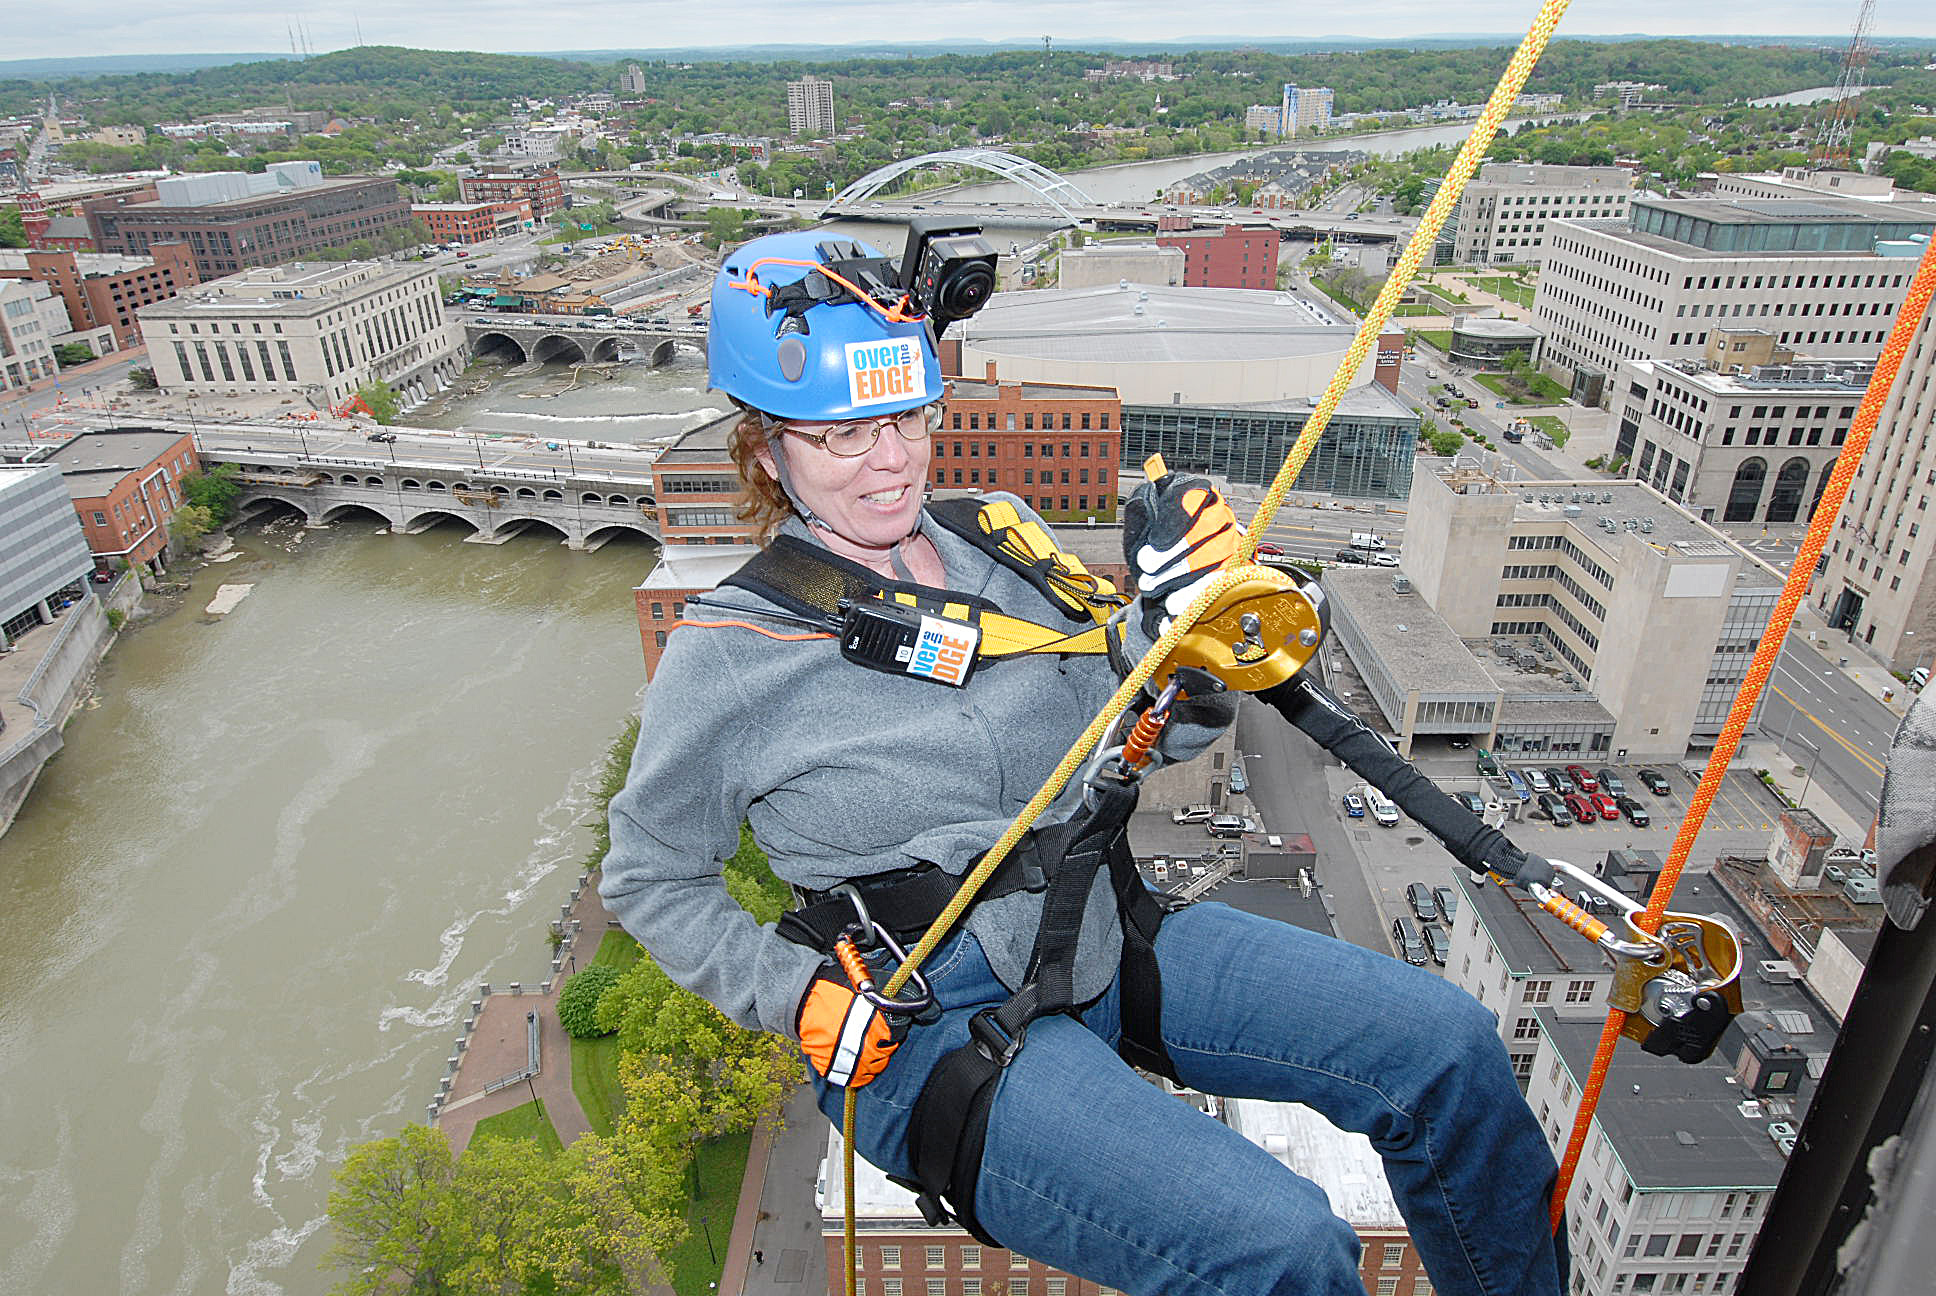 Karen Fien of Spencerport made the descent during the 21 Stories for Scouts event in 2017.